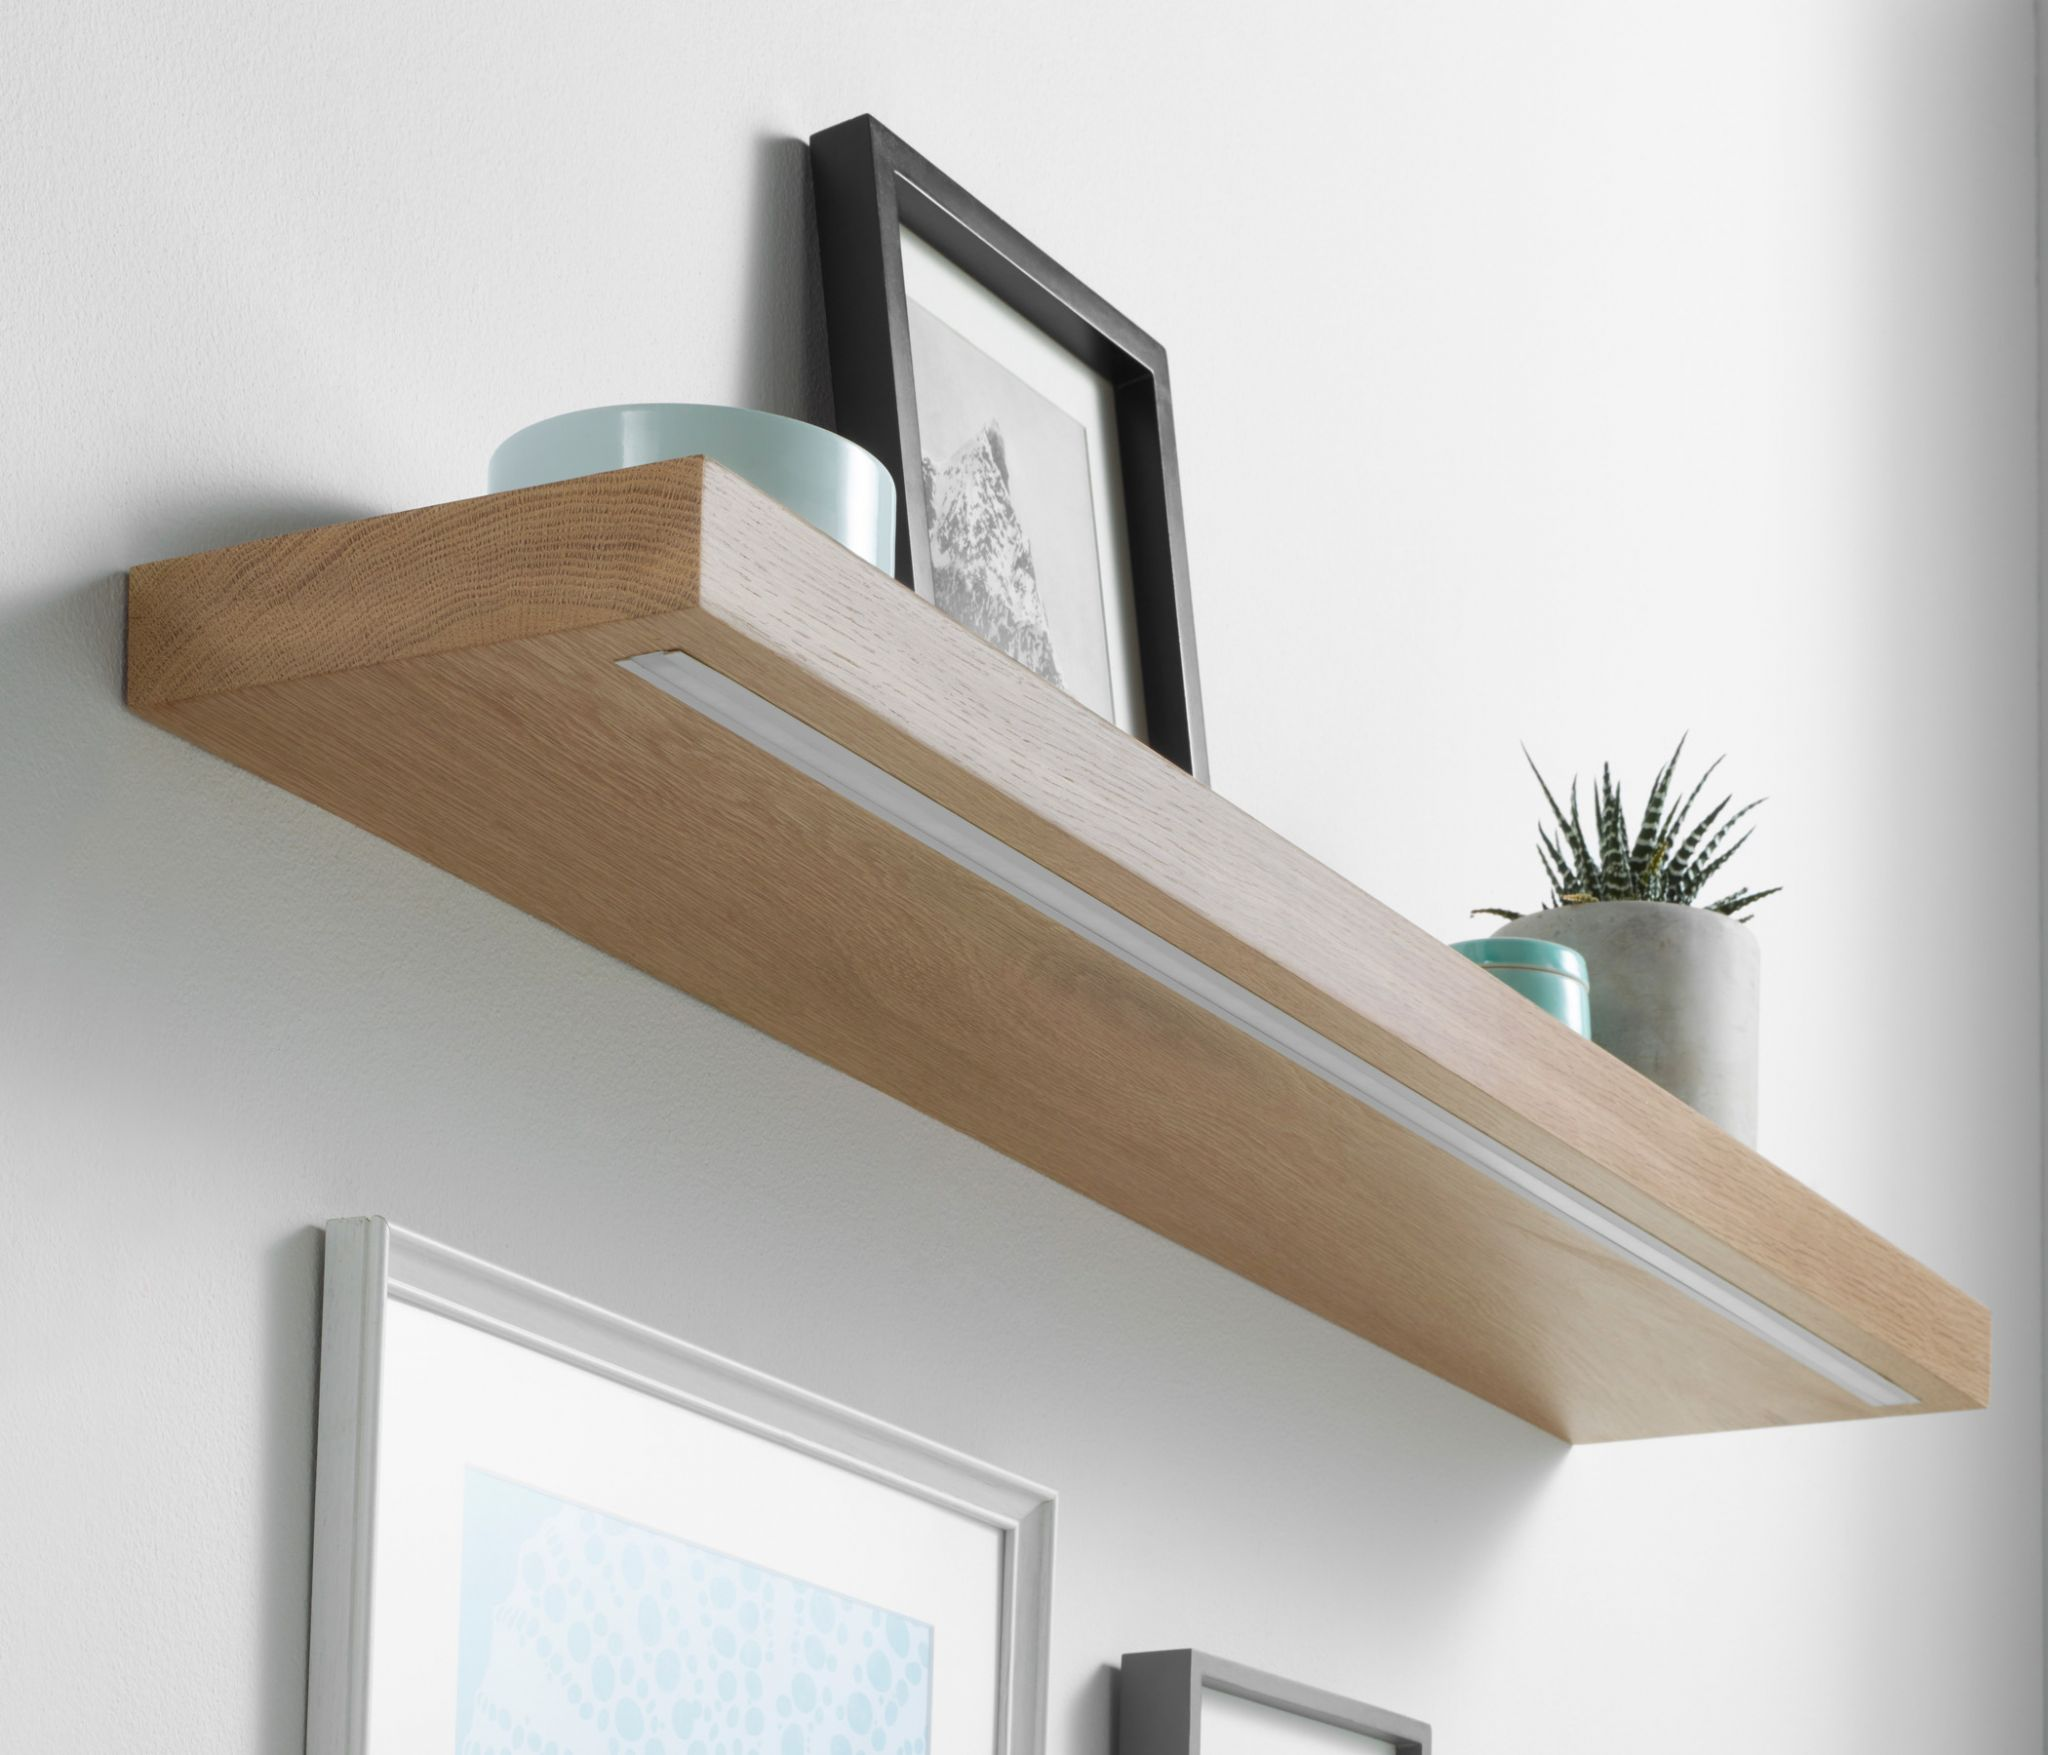 solid oak led light shelf custom made measure customise length apx longest floating open bottom cabinets bedroom corner shelves marble brackets self stick vinyl tile bathroom